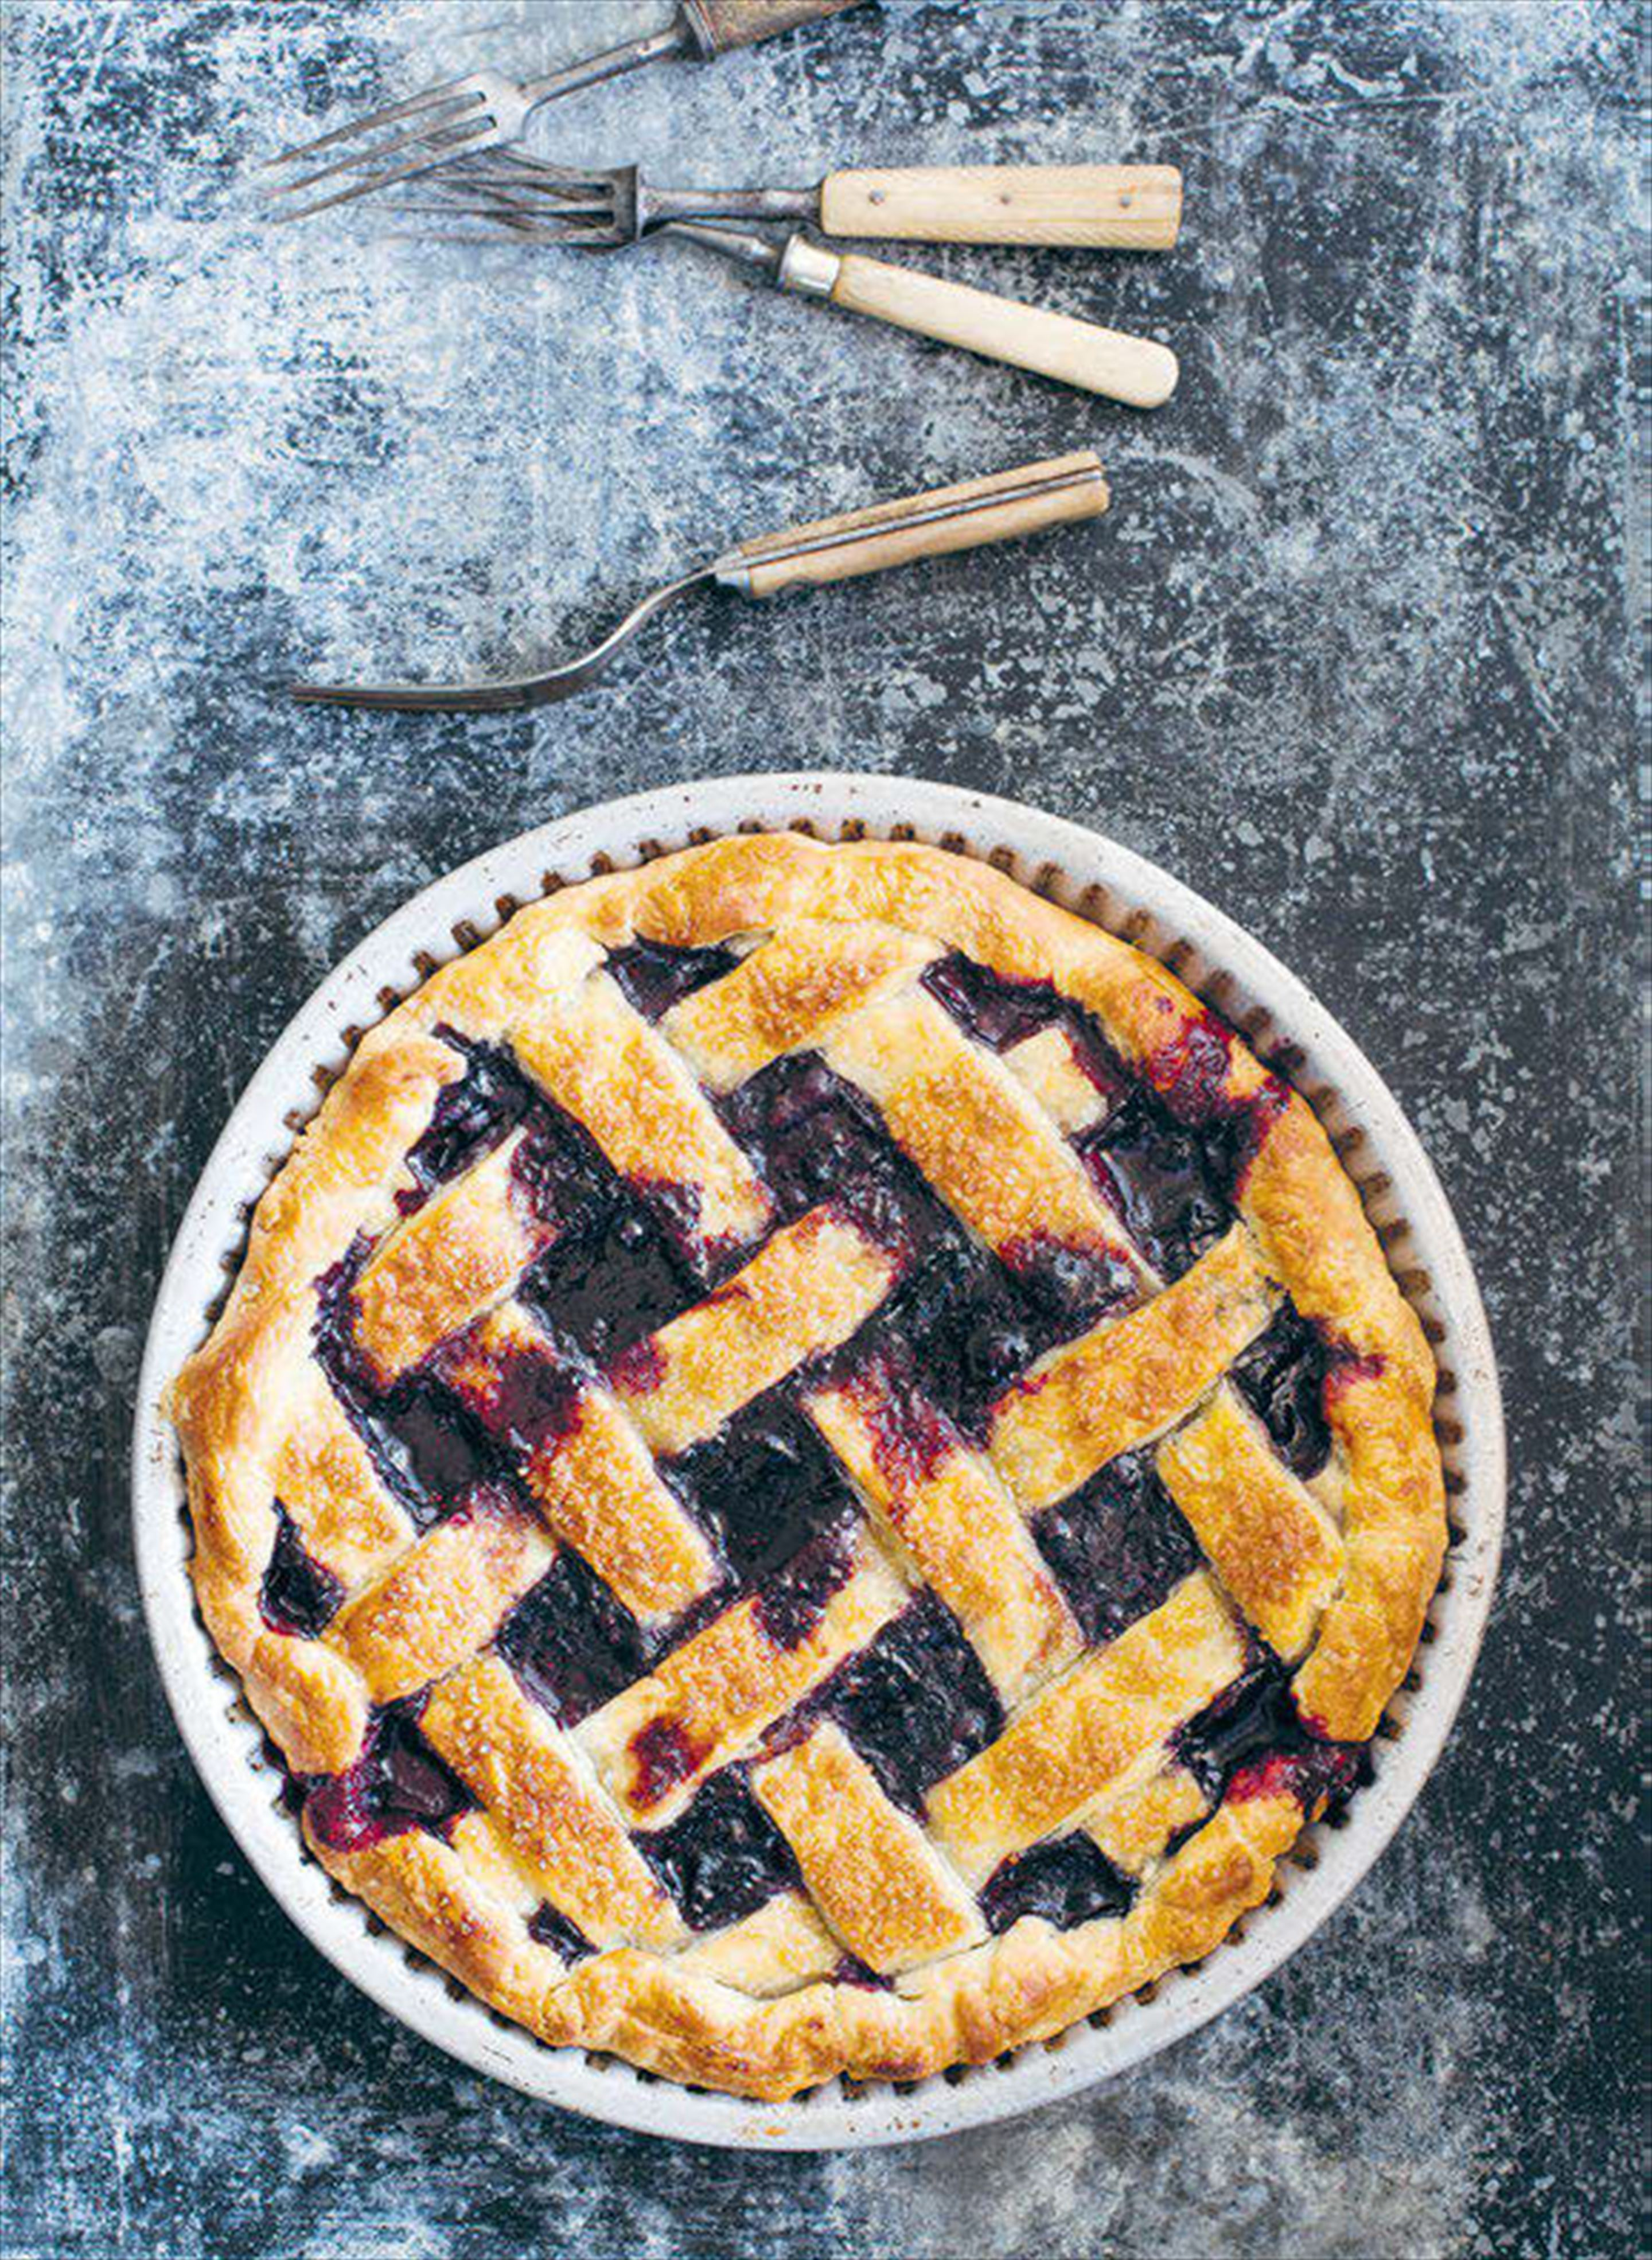 Blueberry, pear and lemon pie